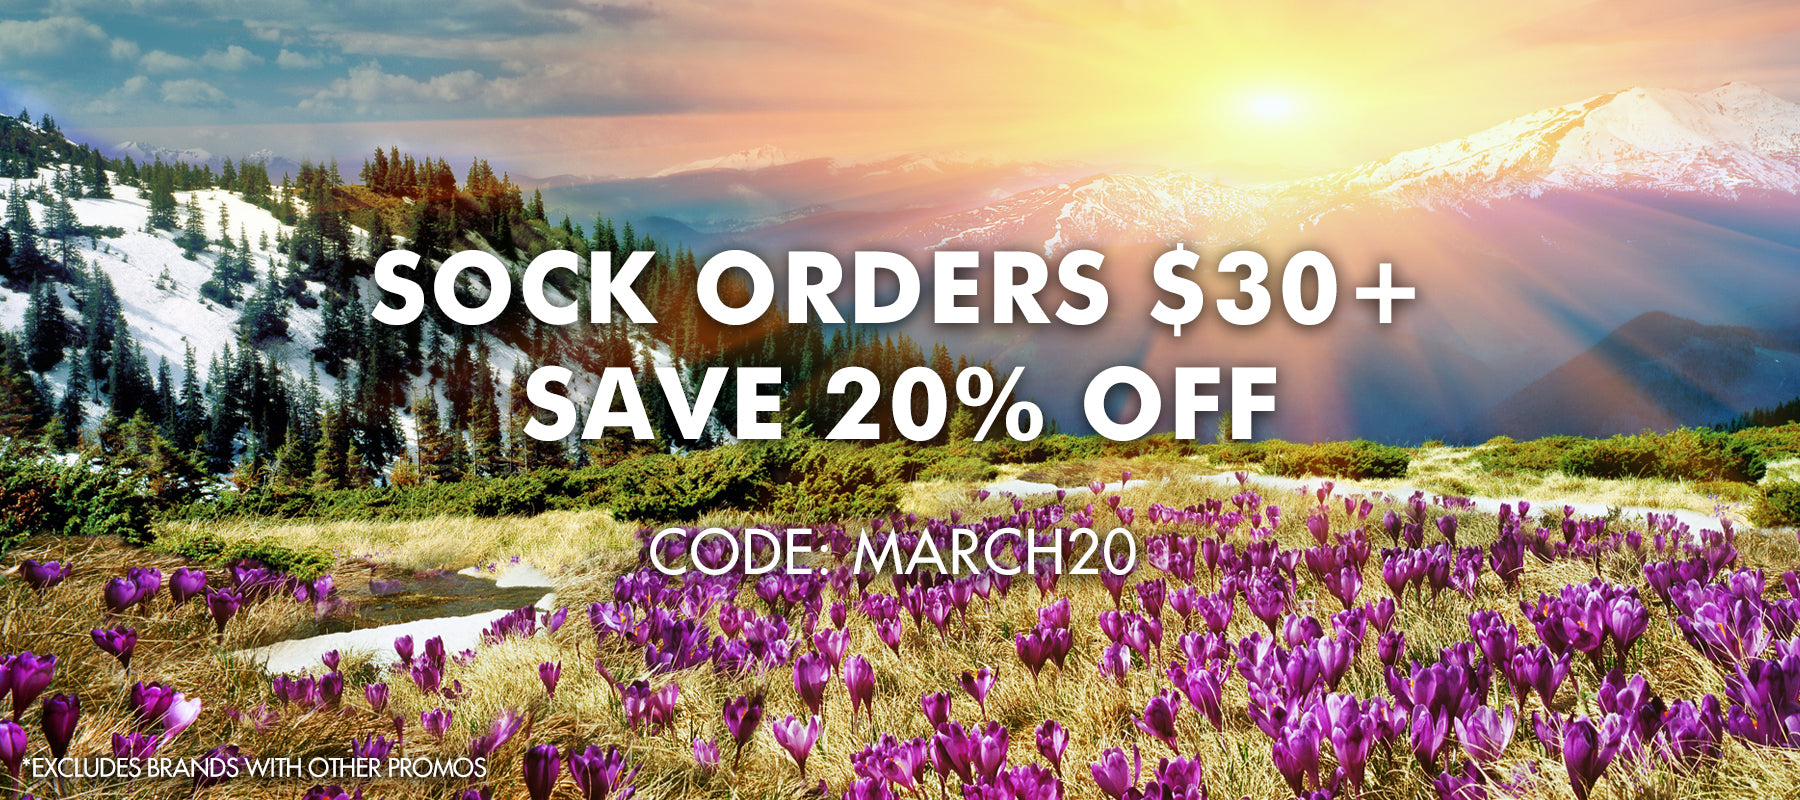 Save 20% off sock orders over $30 using code MARCH20